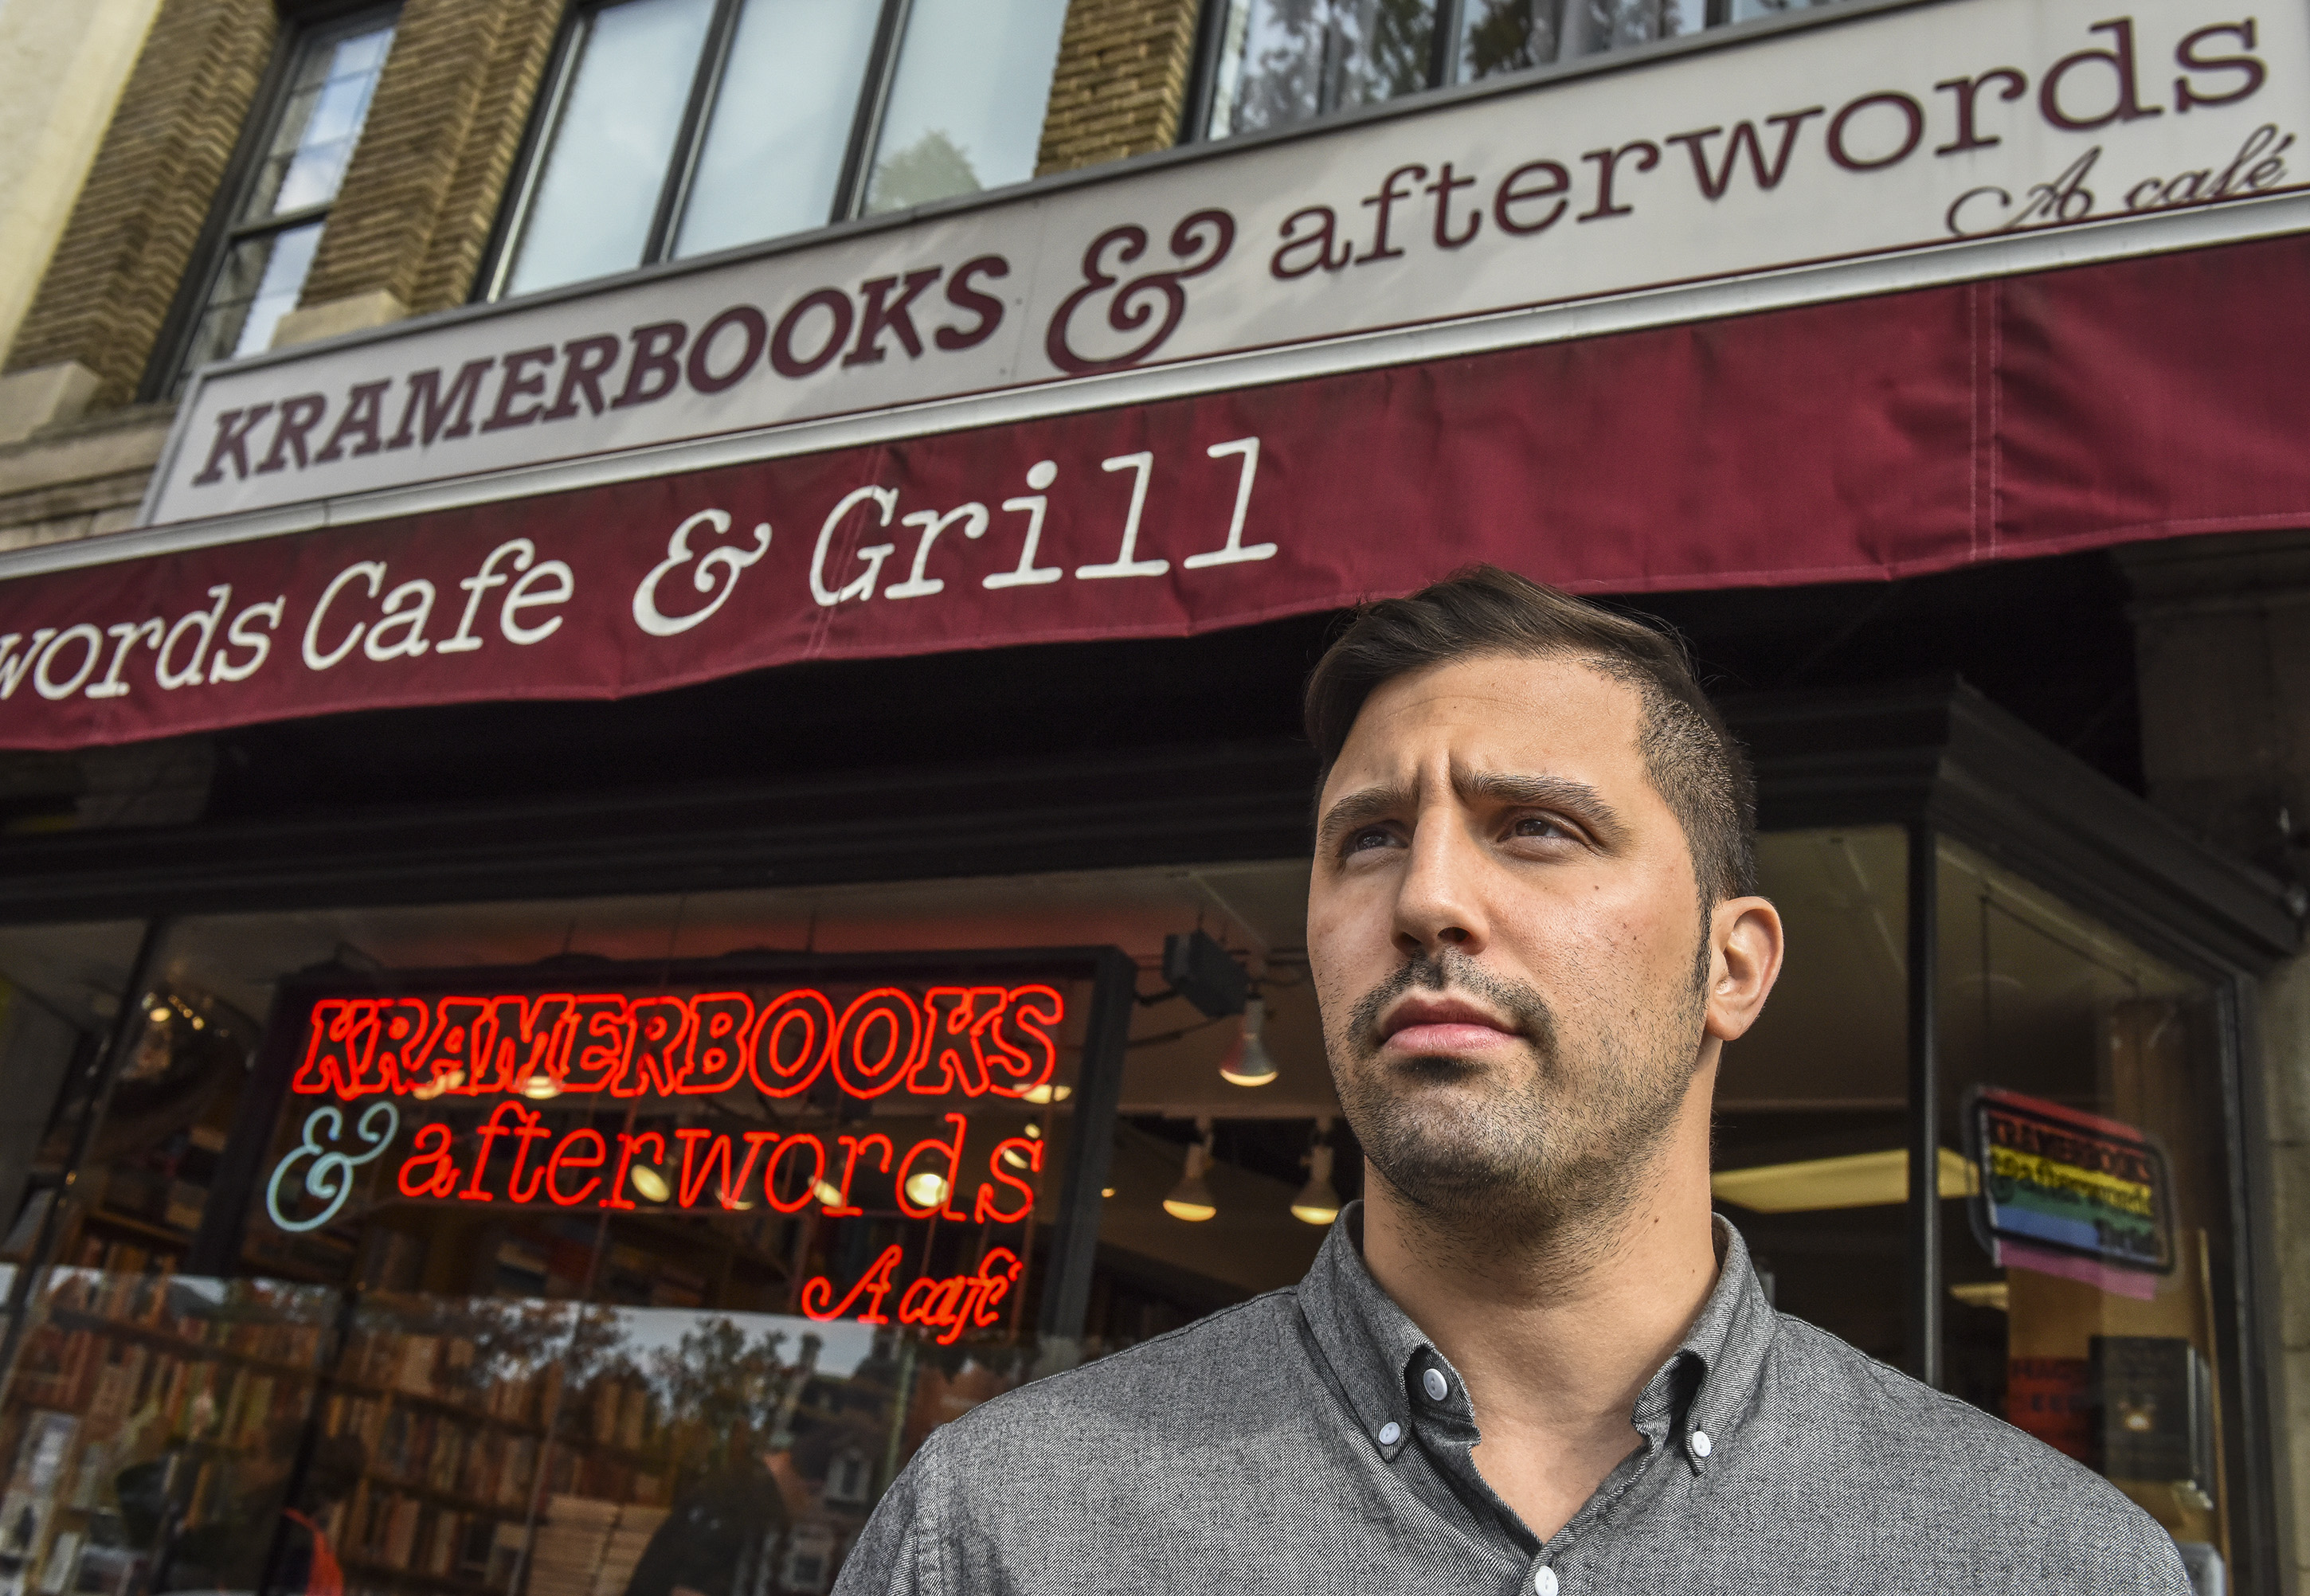 Kramerbooks & Afterwords Cafe, a Dupont Circle staple for 40 years, is changing hands, in Washington, DC.